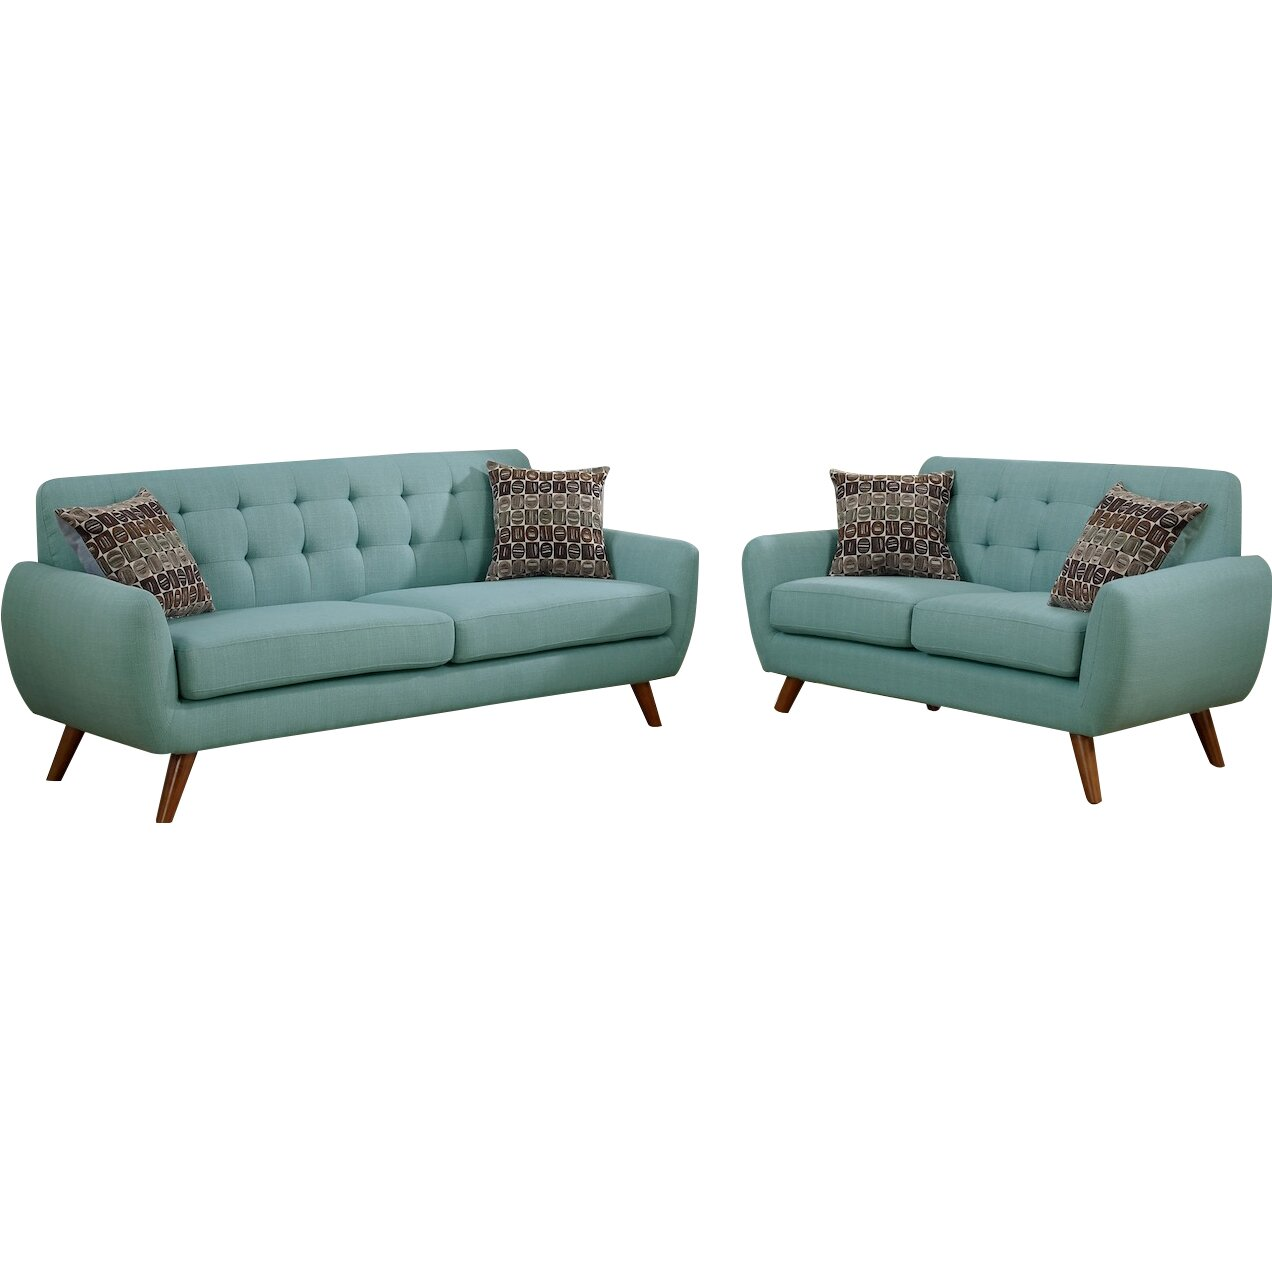 Infini furnishings modern retro sofa and loveseat reviews wayfair Couches and loveseats